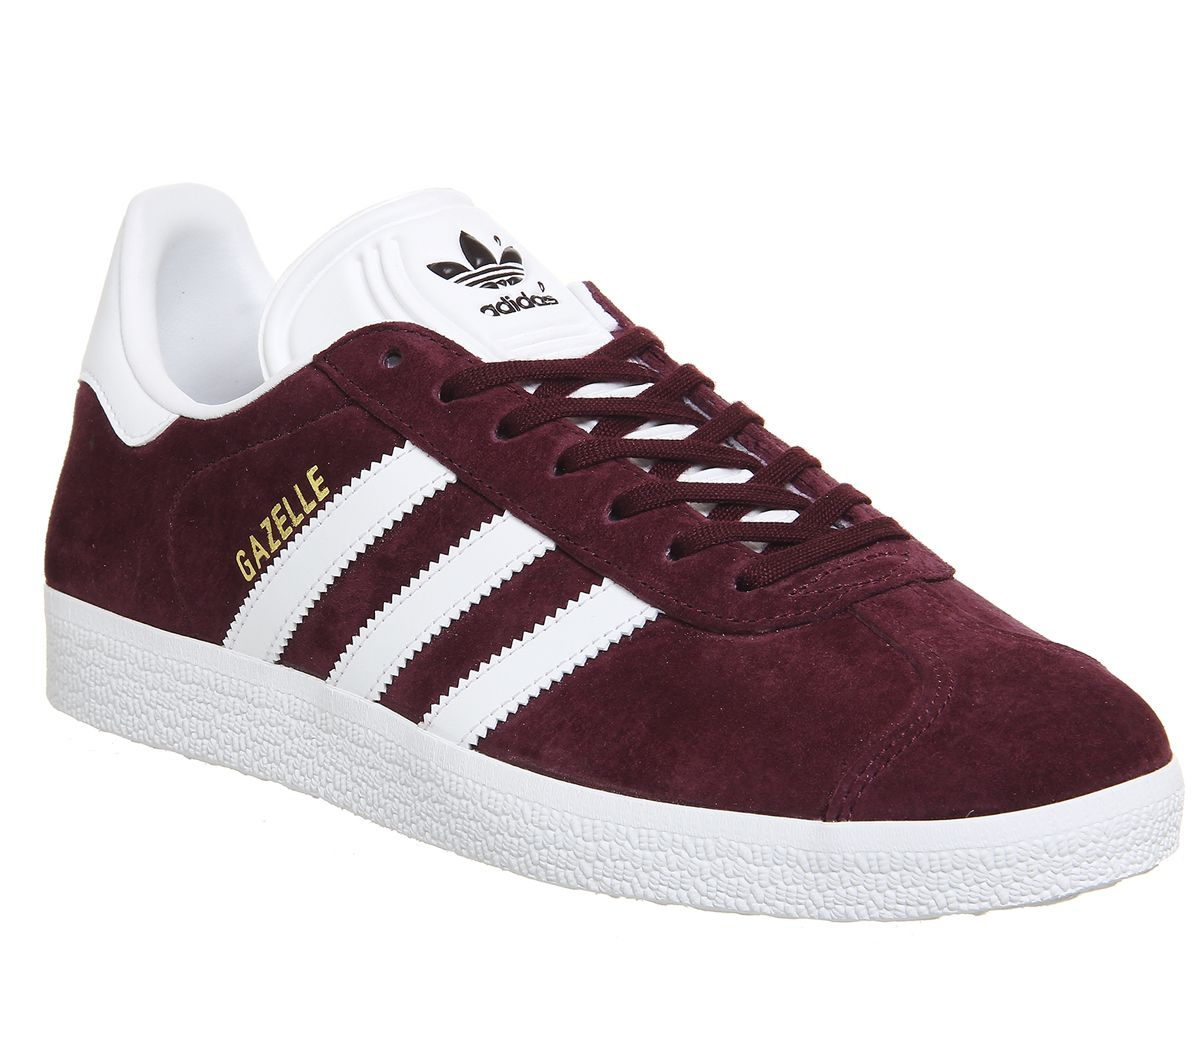 c1f92a5a2d53 adidas Gazelle Trainers Burgundy White Gold Metallic - His trainers